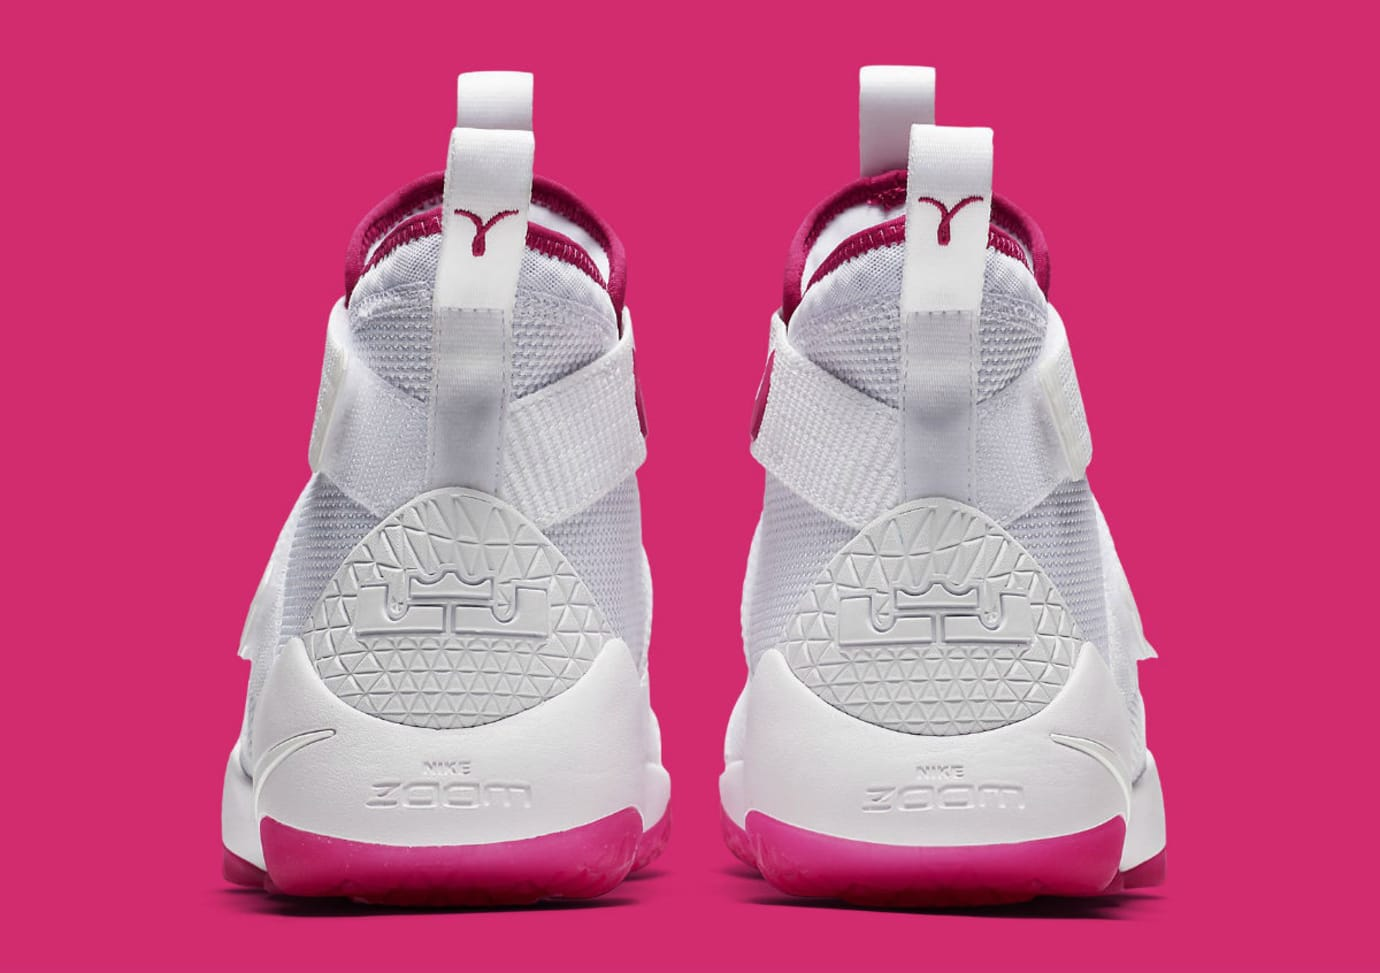 sale retailer 2addc 5f0ae Nike LeBron Soldier 11 Kay Yow Breast Cancer Awareness ...